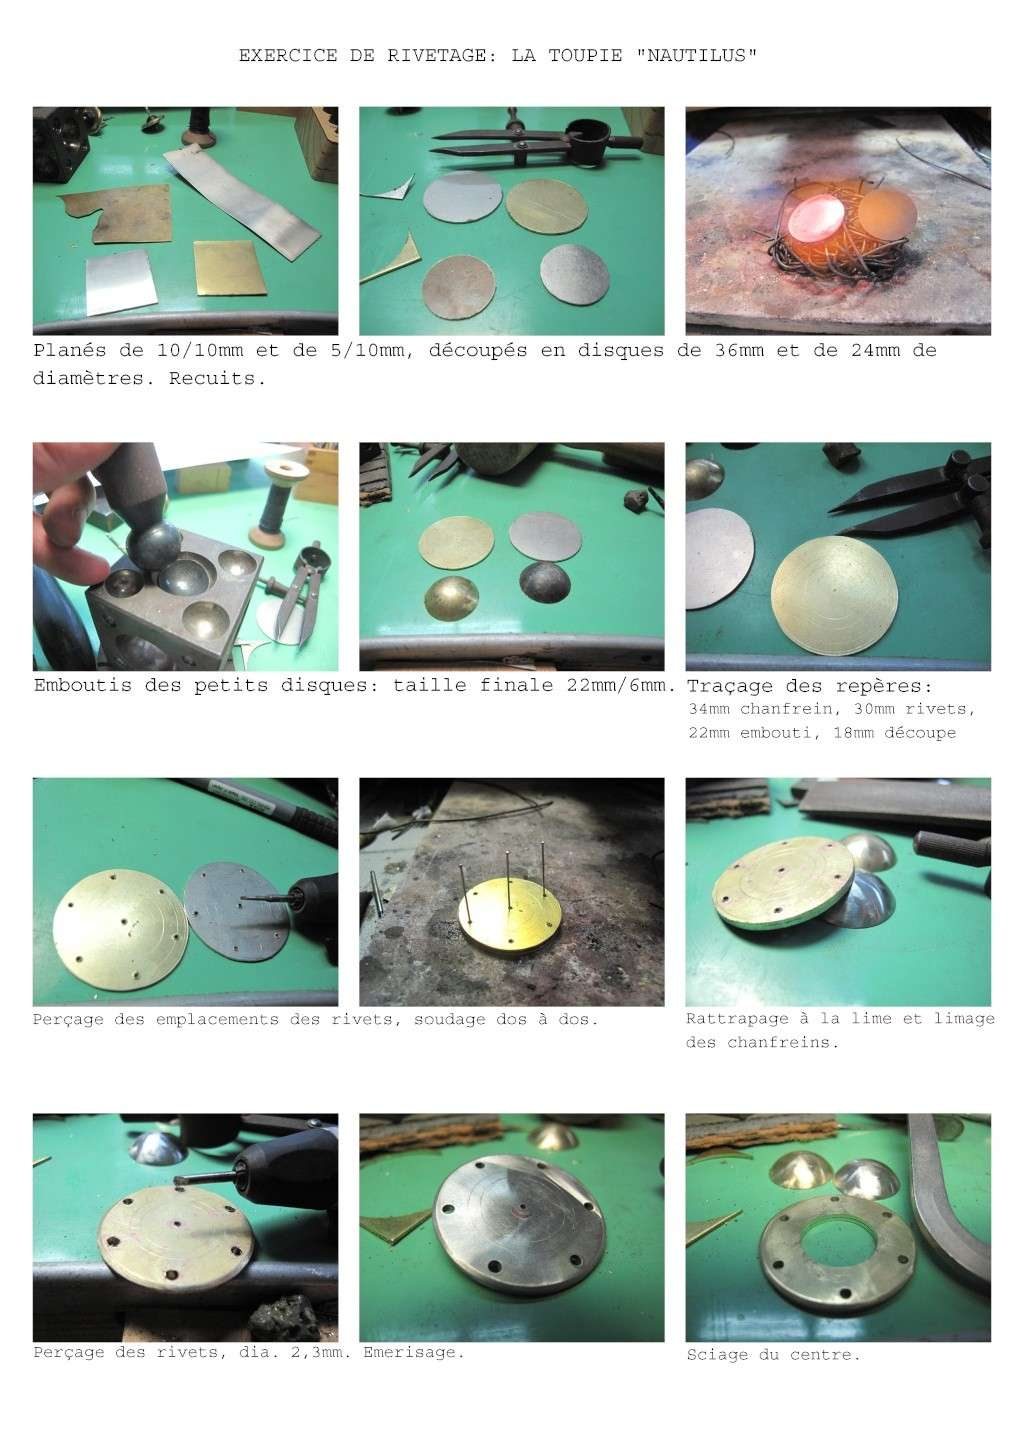 Fabrication d'une toupie II ! plus simple comme exercice Cours_13